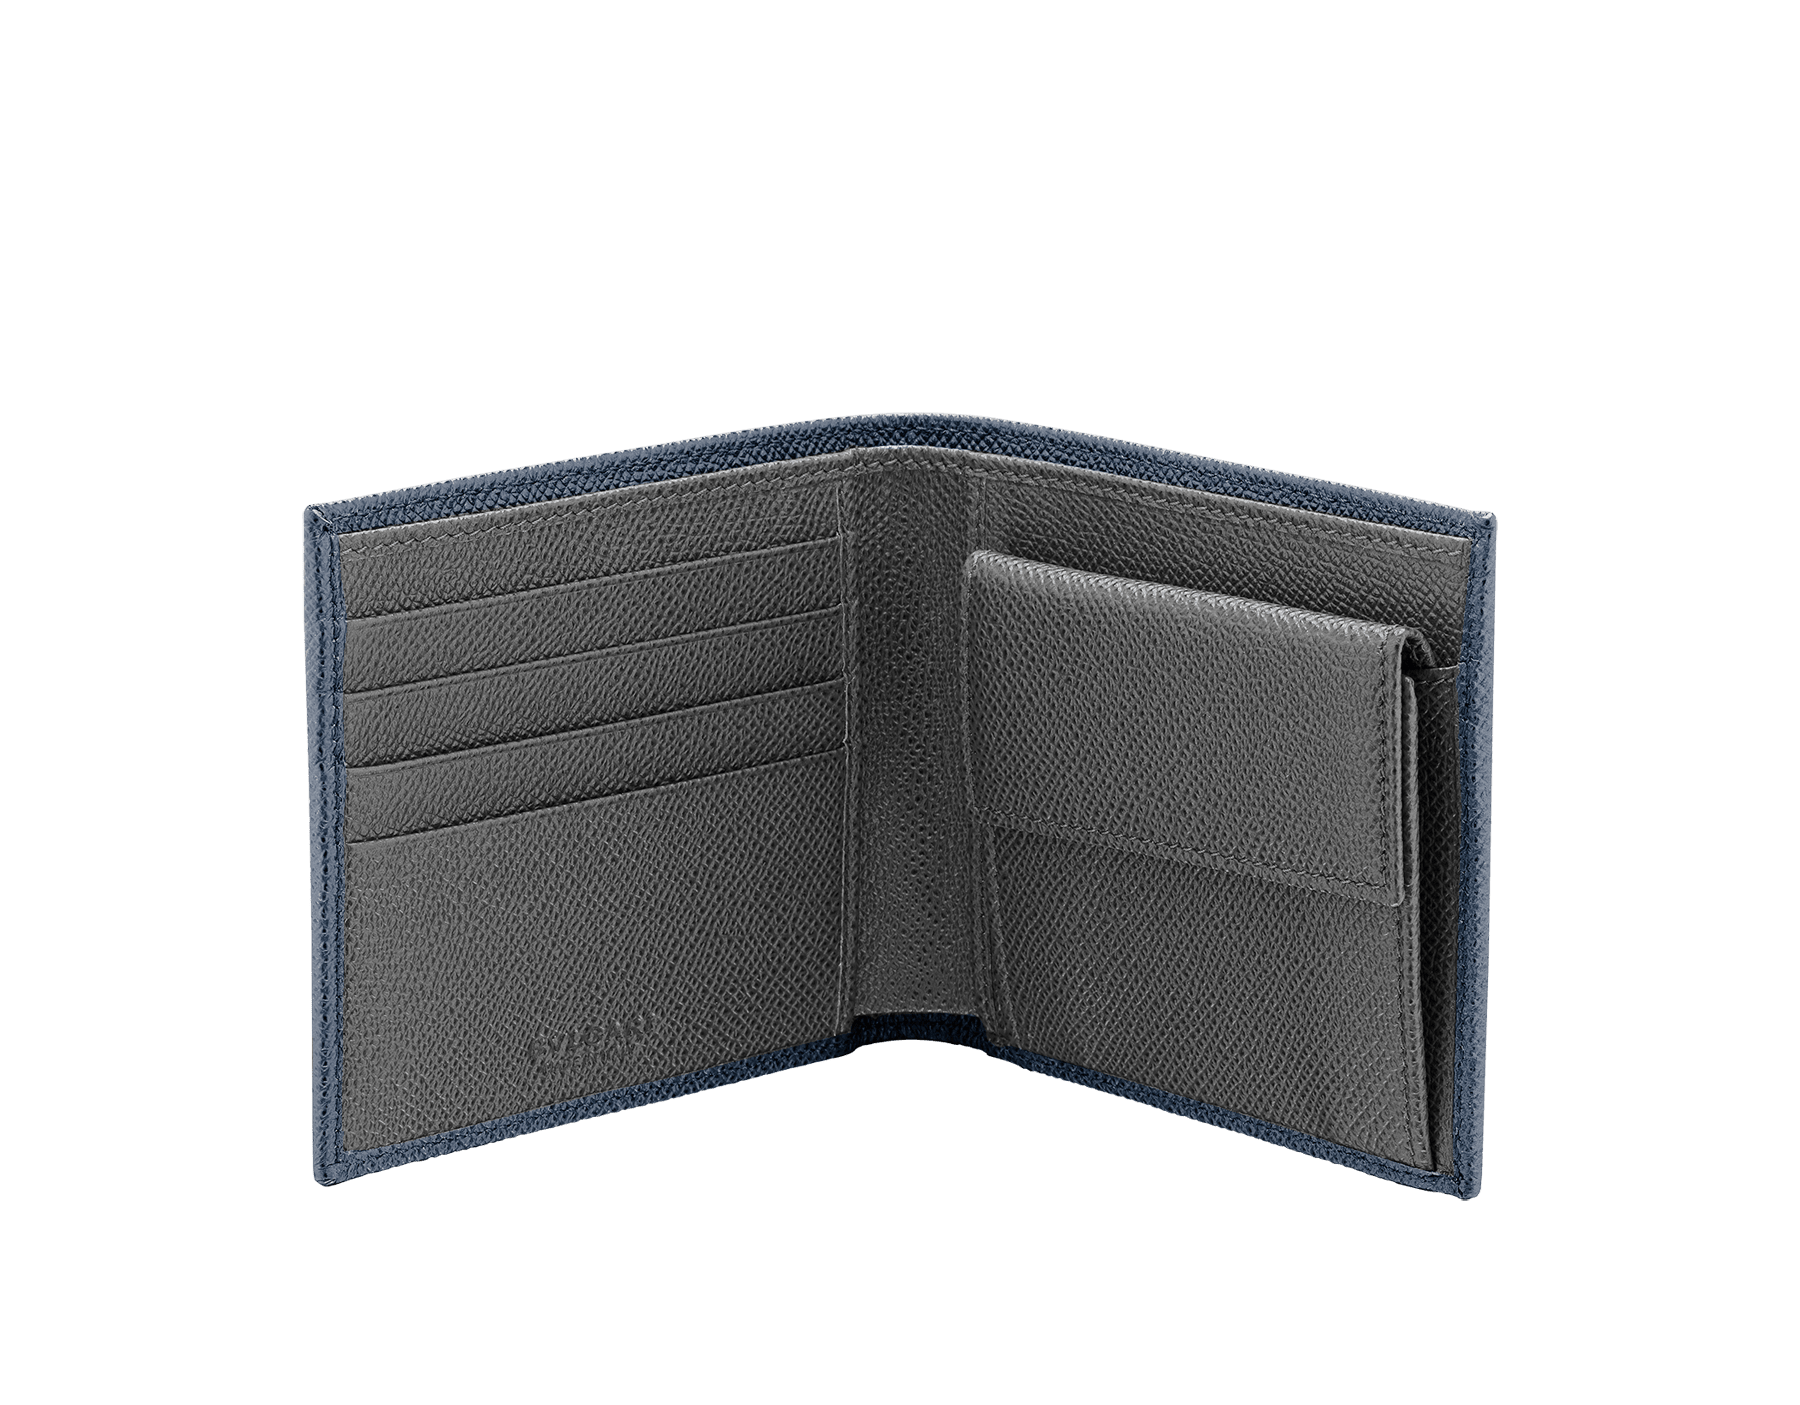 BVLGARI BVLGARI men's wallet in denim sapphire and charcoal diamond grain calf leather and blue slate nappa lining. Iconic logo décor in palladium plated brass. 289112 image 2